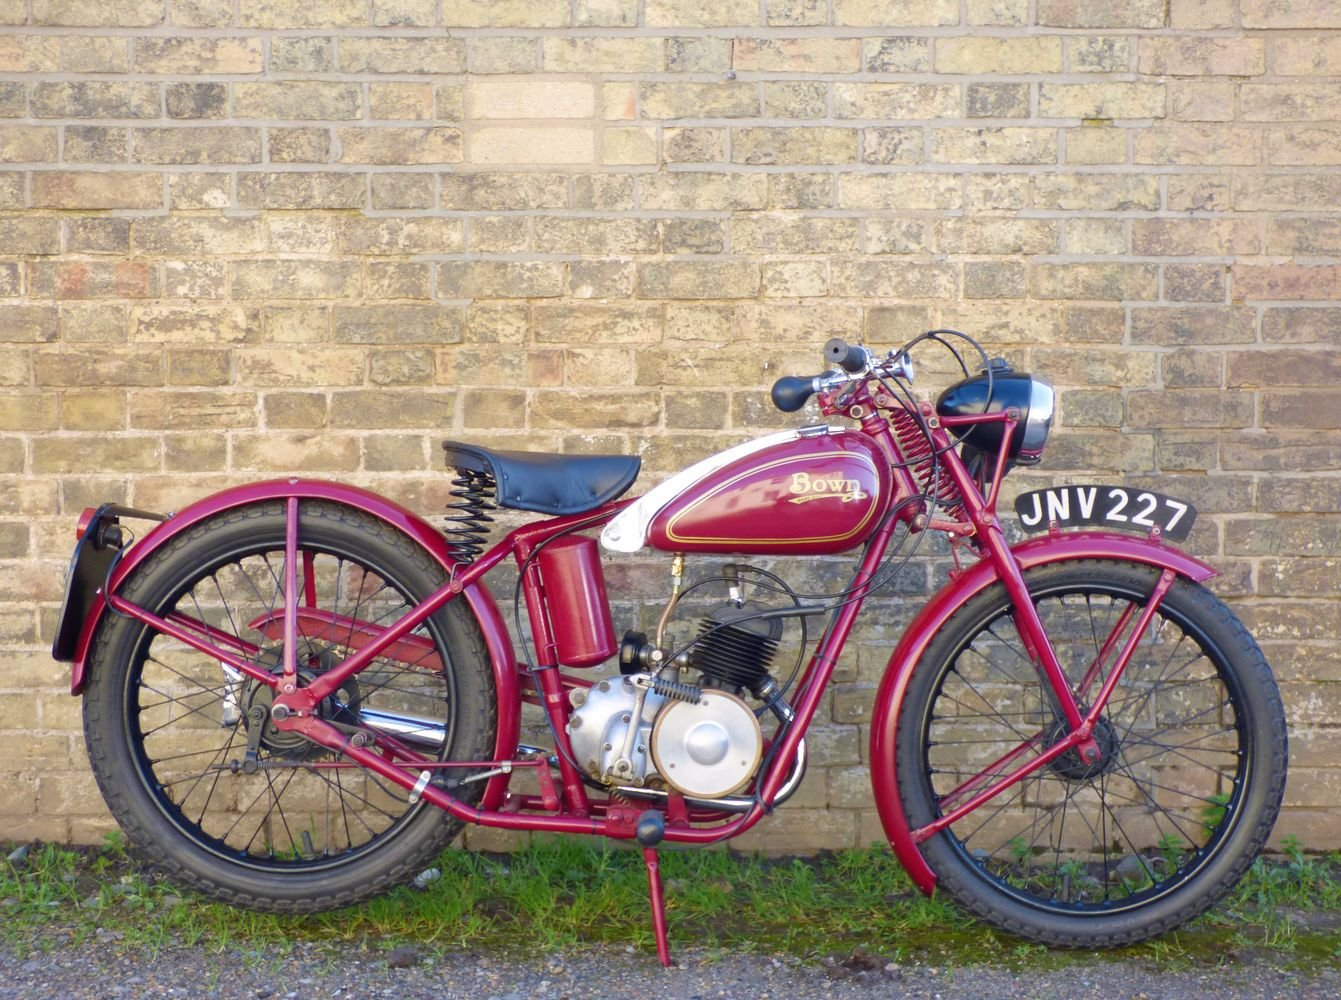 1953 Bown Standard 98cc For Sale (picture 1 of 6)